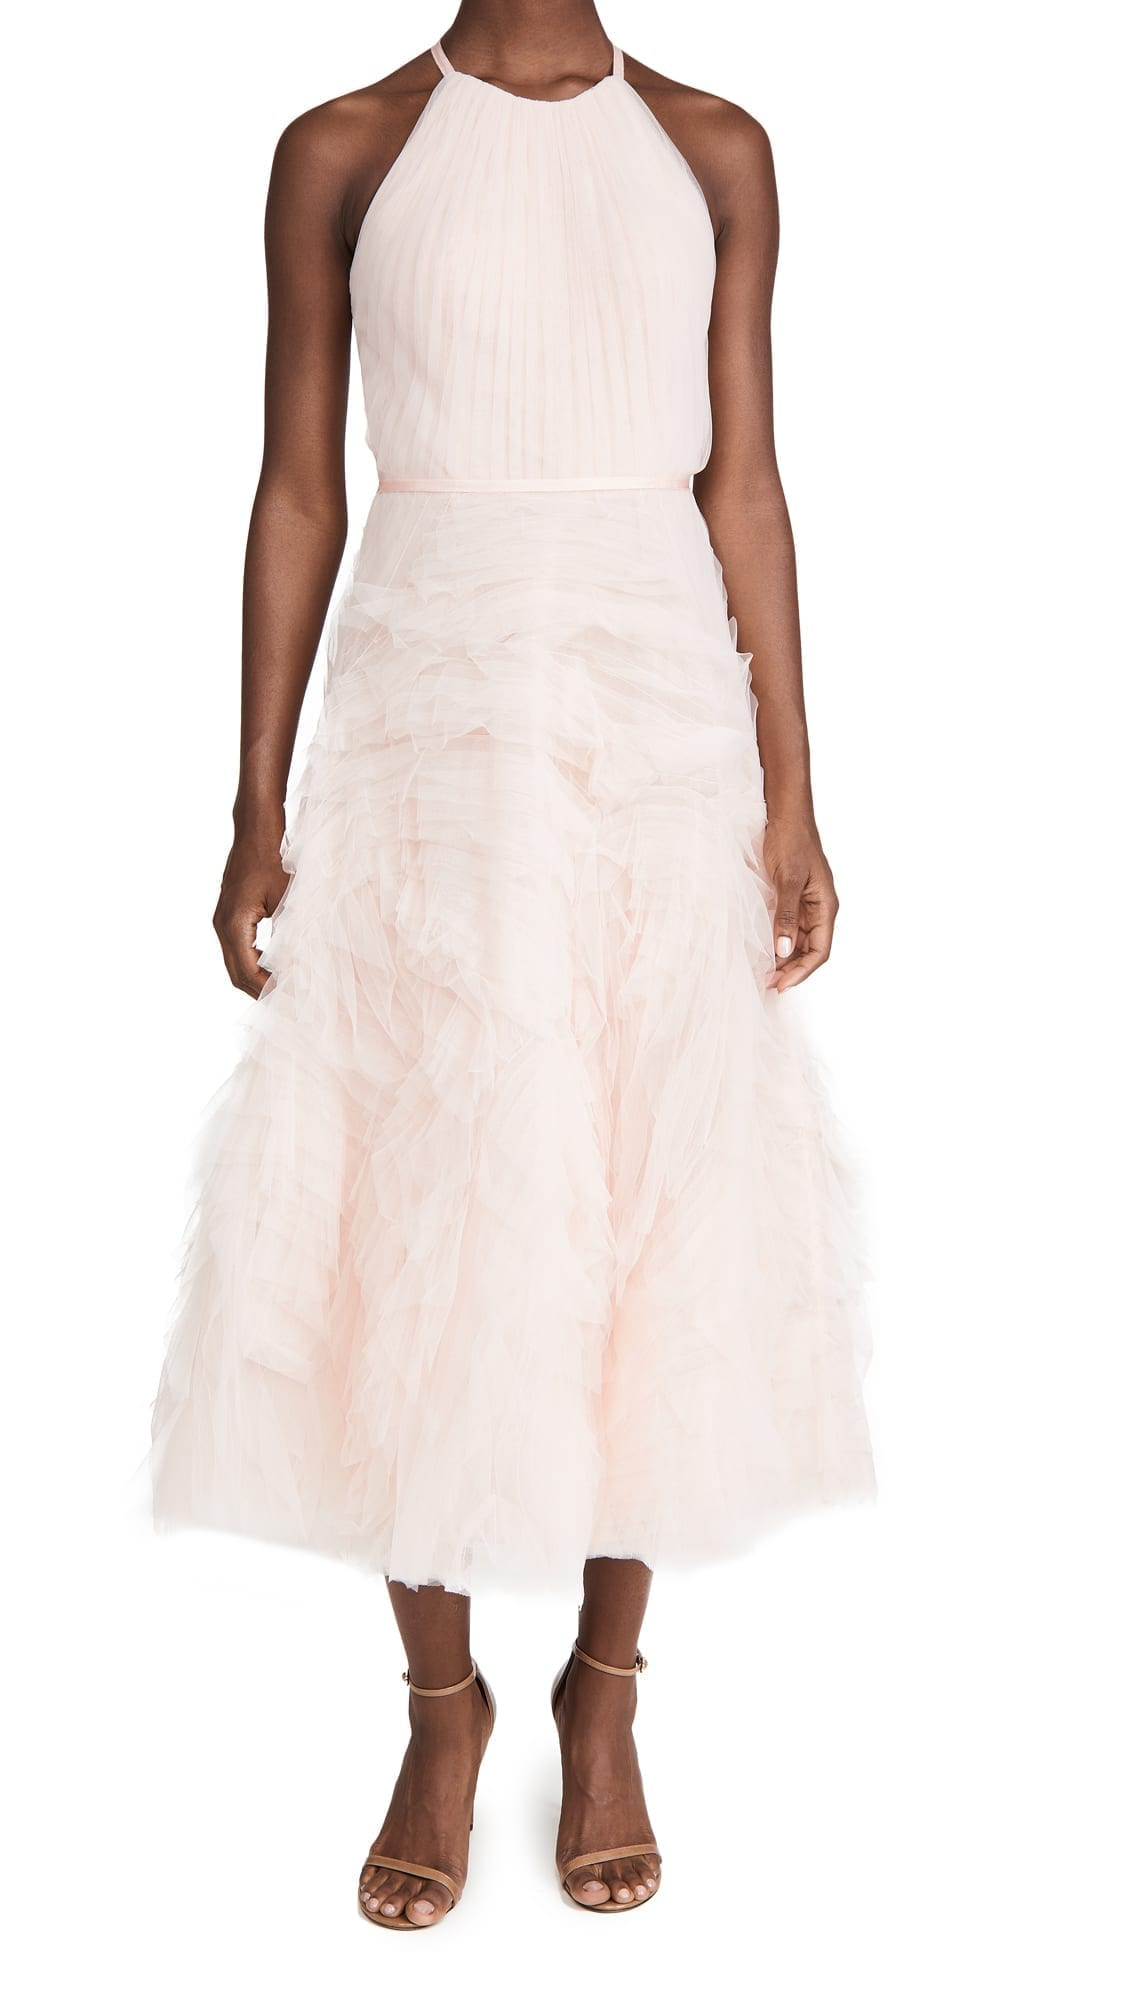 MARCHESA NOTTE Textured Tulle Halter Tea Length Dress